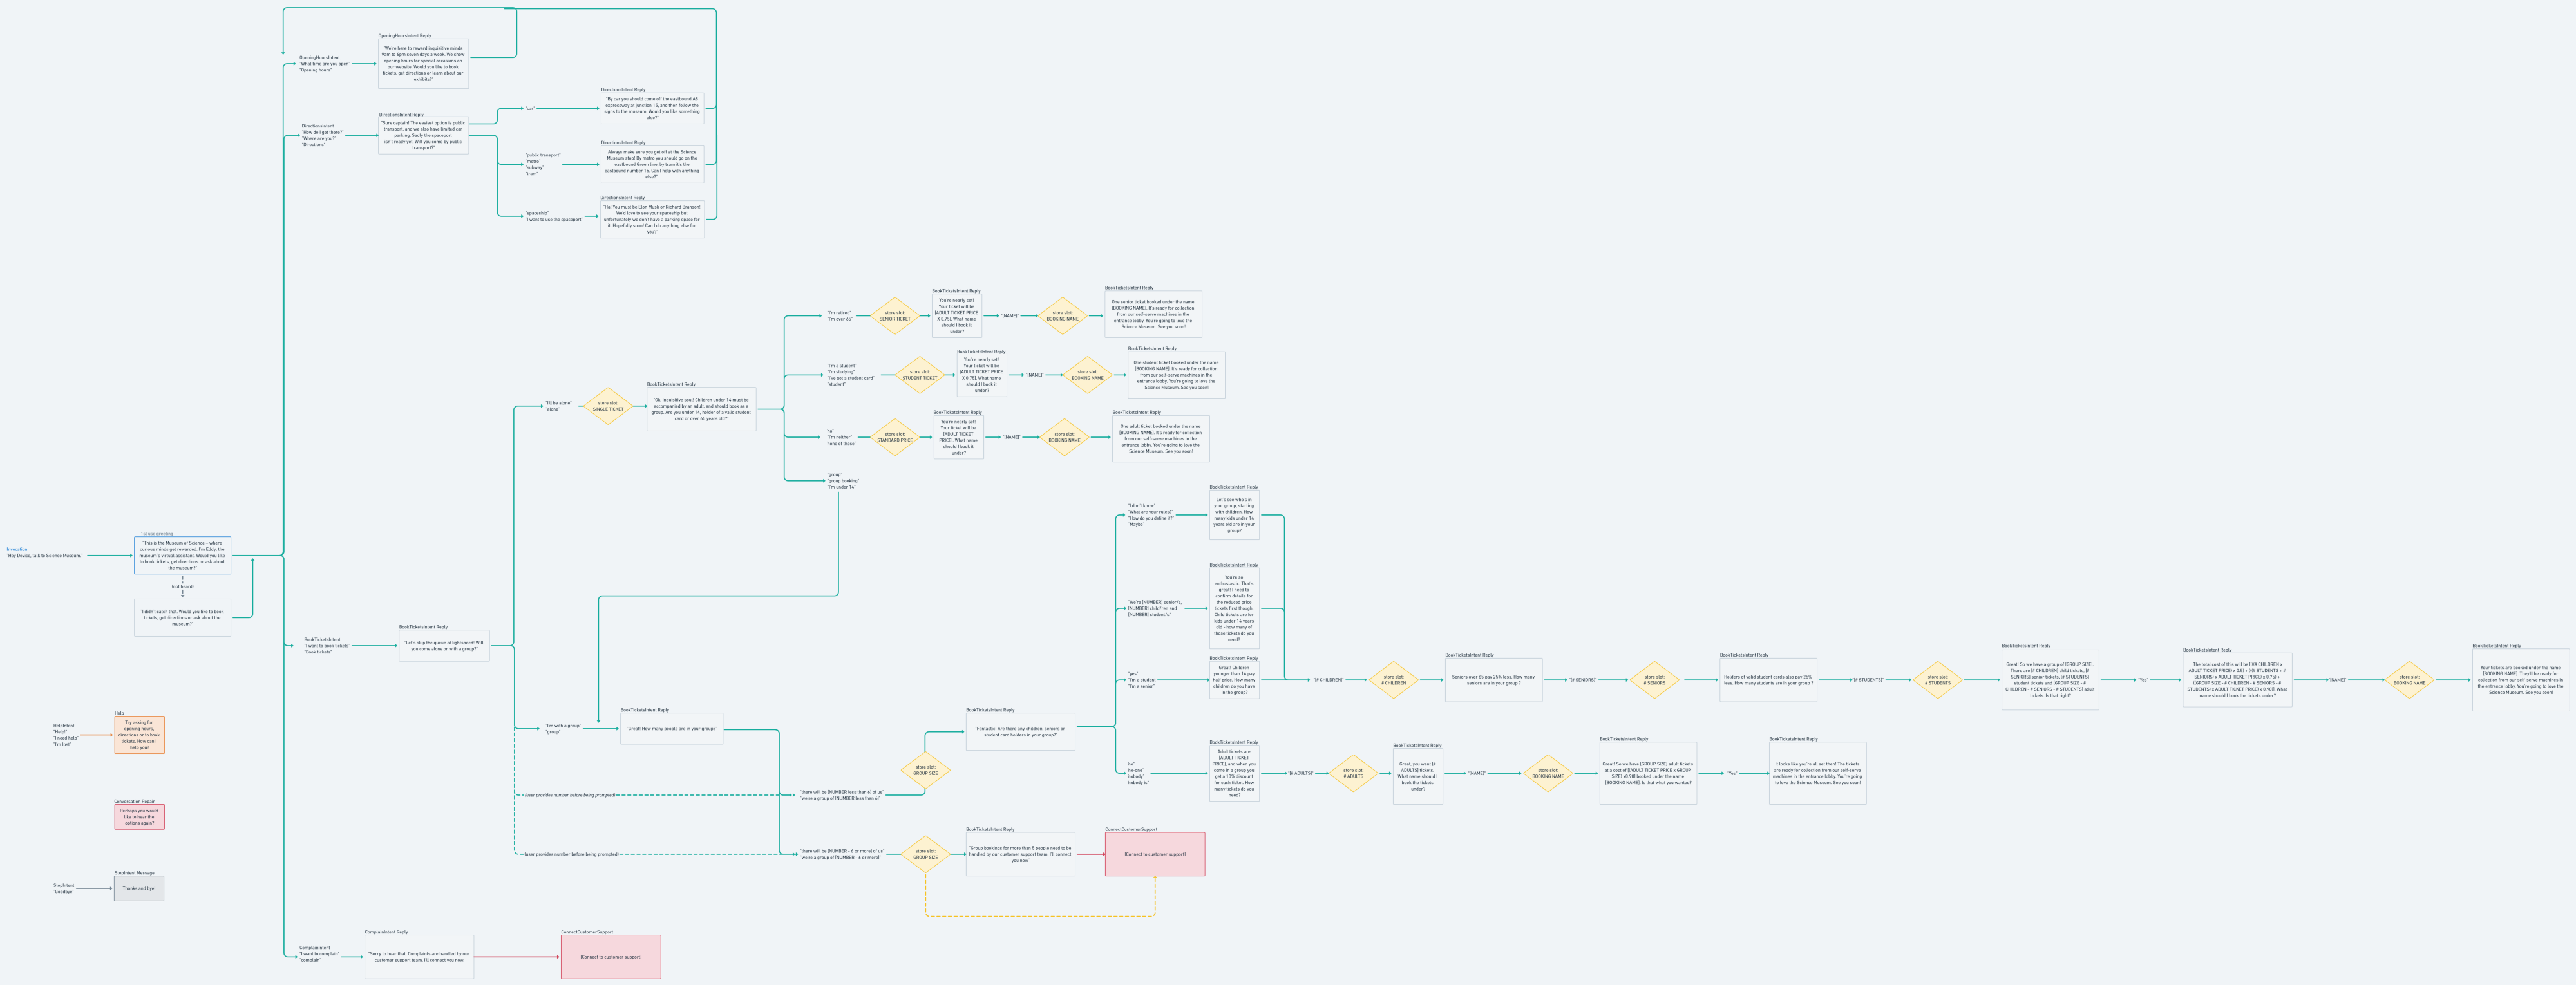 this is an image of a conversational flow